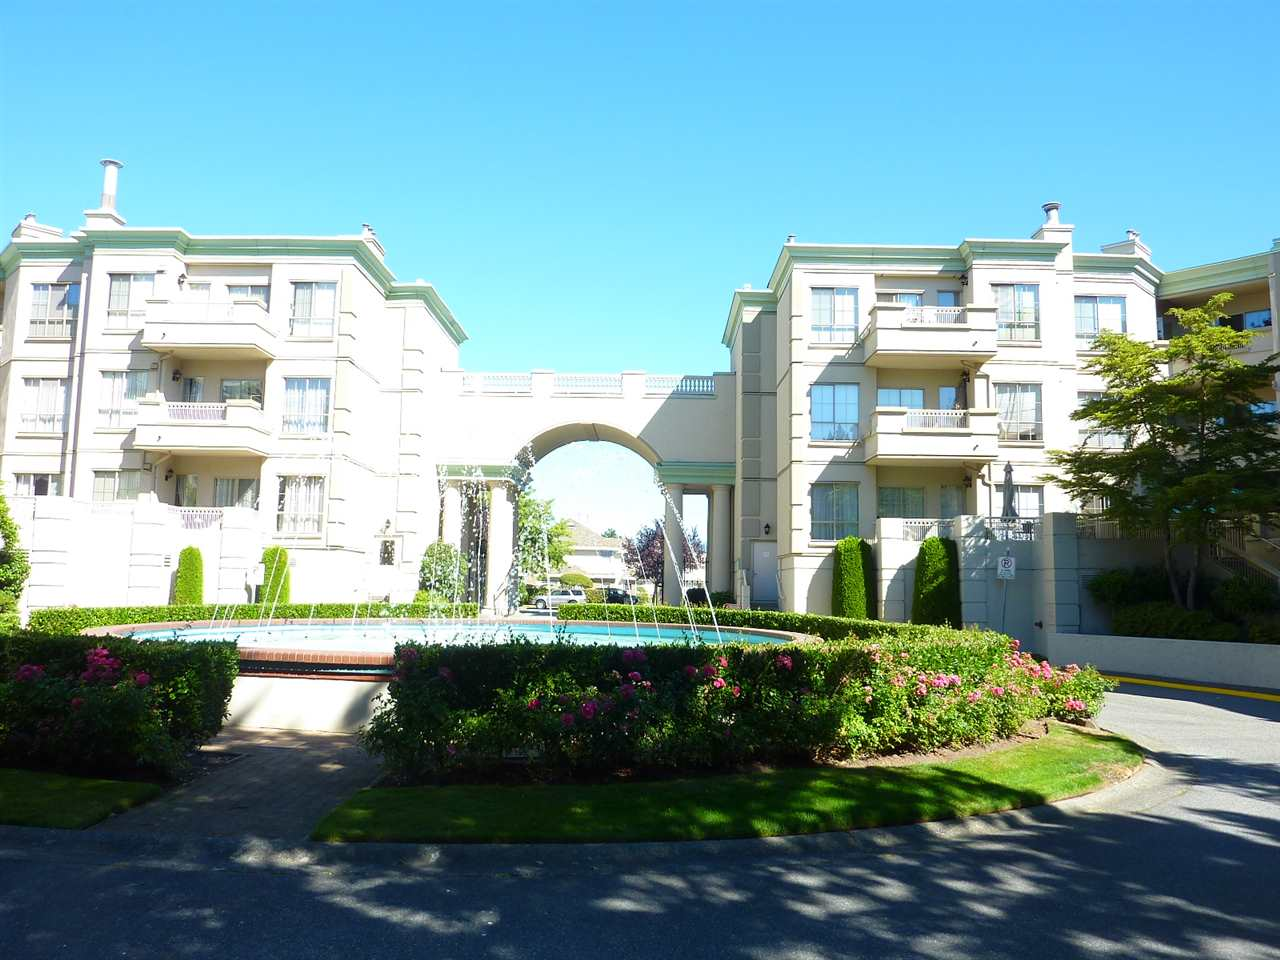 Photo 2: 211 8580 GENERAL CURRIE Road in Richmond: Brighouse South Condo for sale : MLS® # R2200455